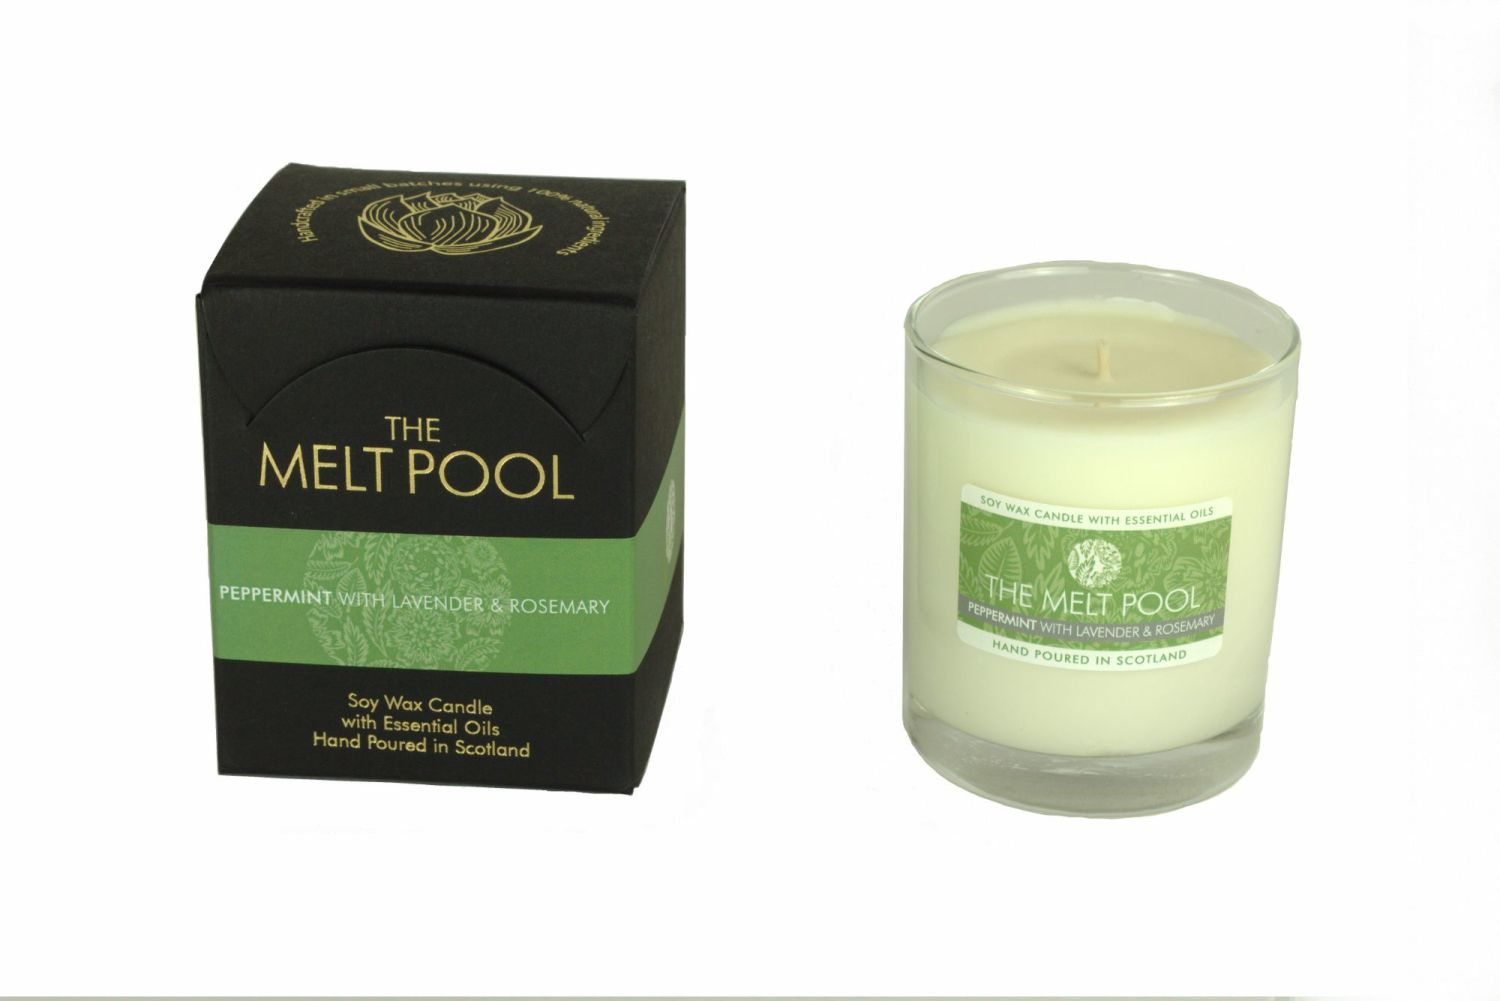 The Melt Pool Large Tumbler: Peppermint with Lavender & Rosemary